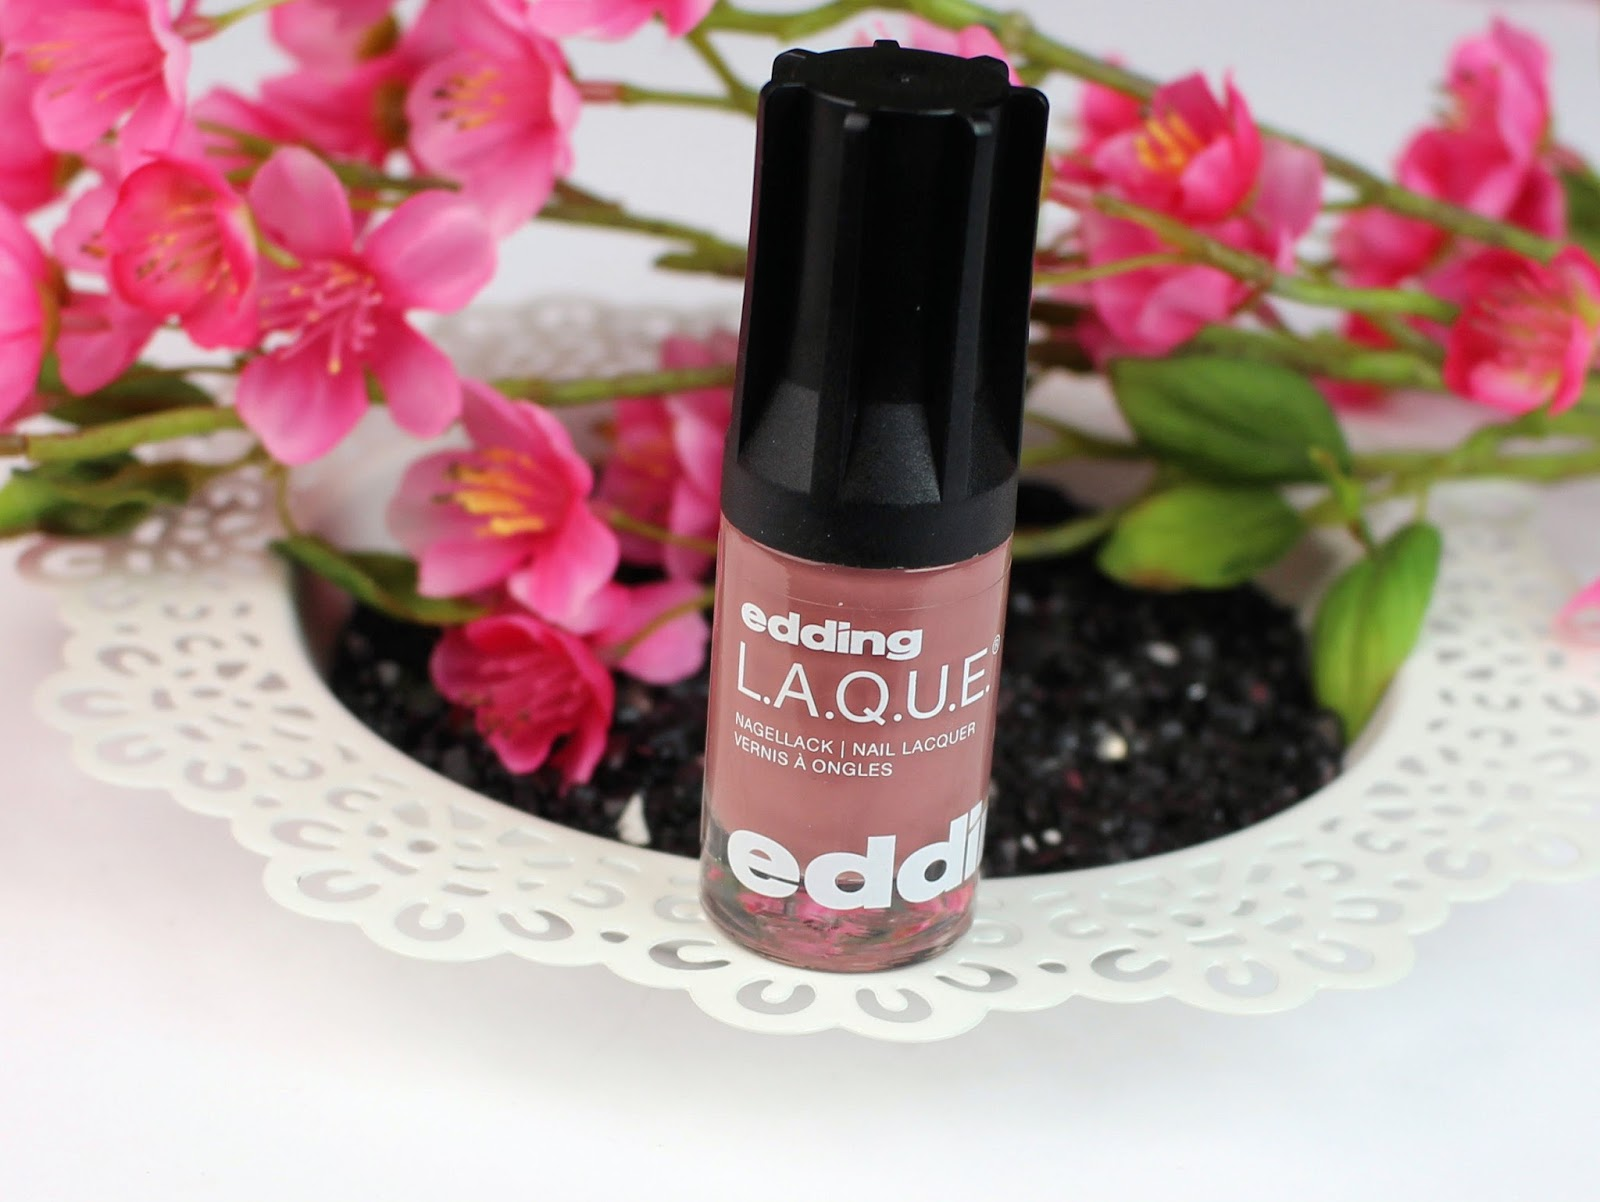 altrosa, blogger club, drogerie, edding L.A.Q.U.E., fingernägel lackieren, glanz, grau, greedy grey, haltbarkeit, mad mistyrose, nagellack, nailpolish, review, swatches, top coat, tragebilder, überlack,